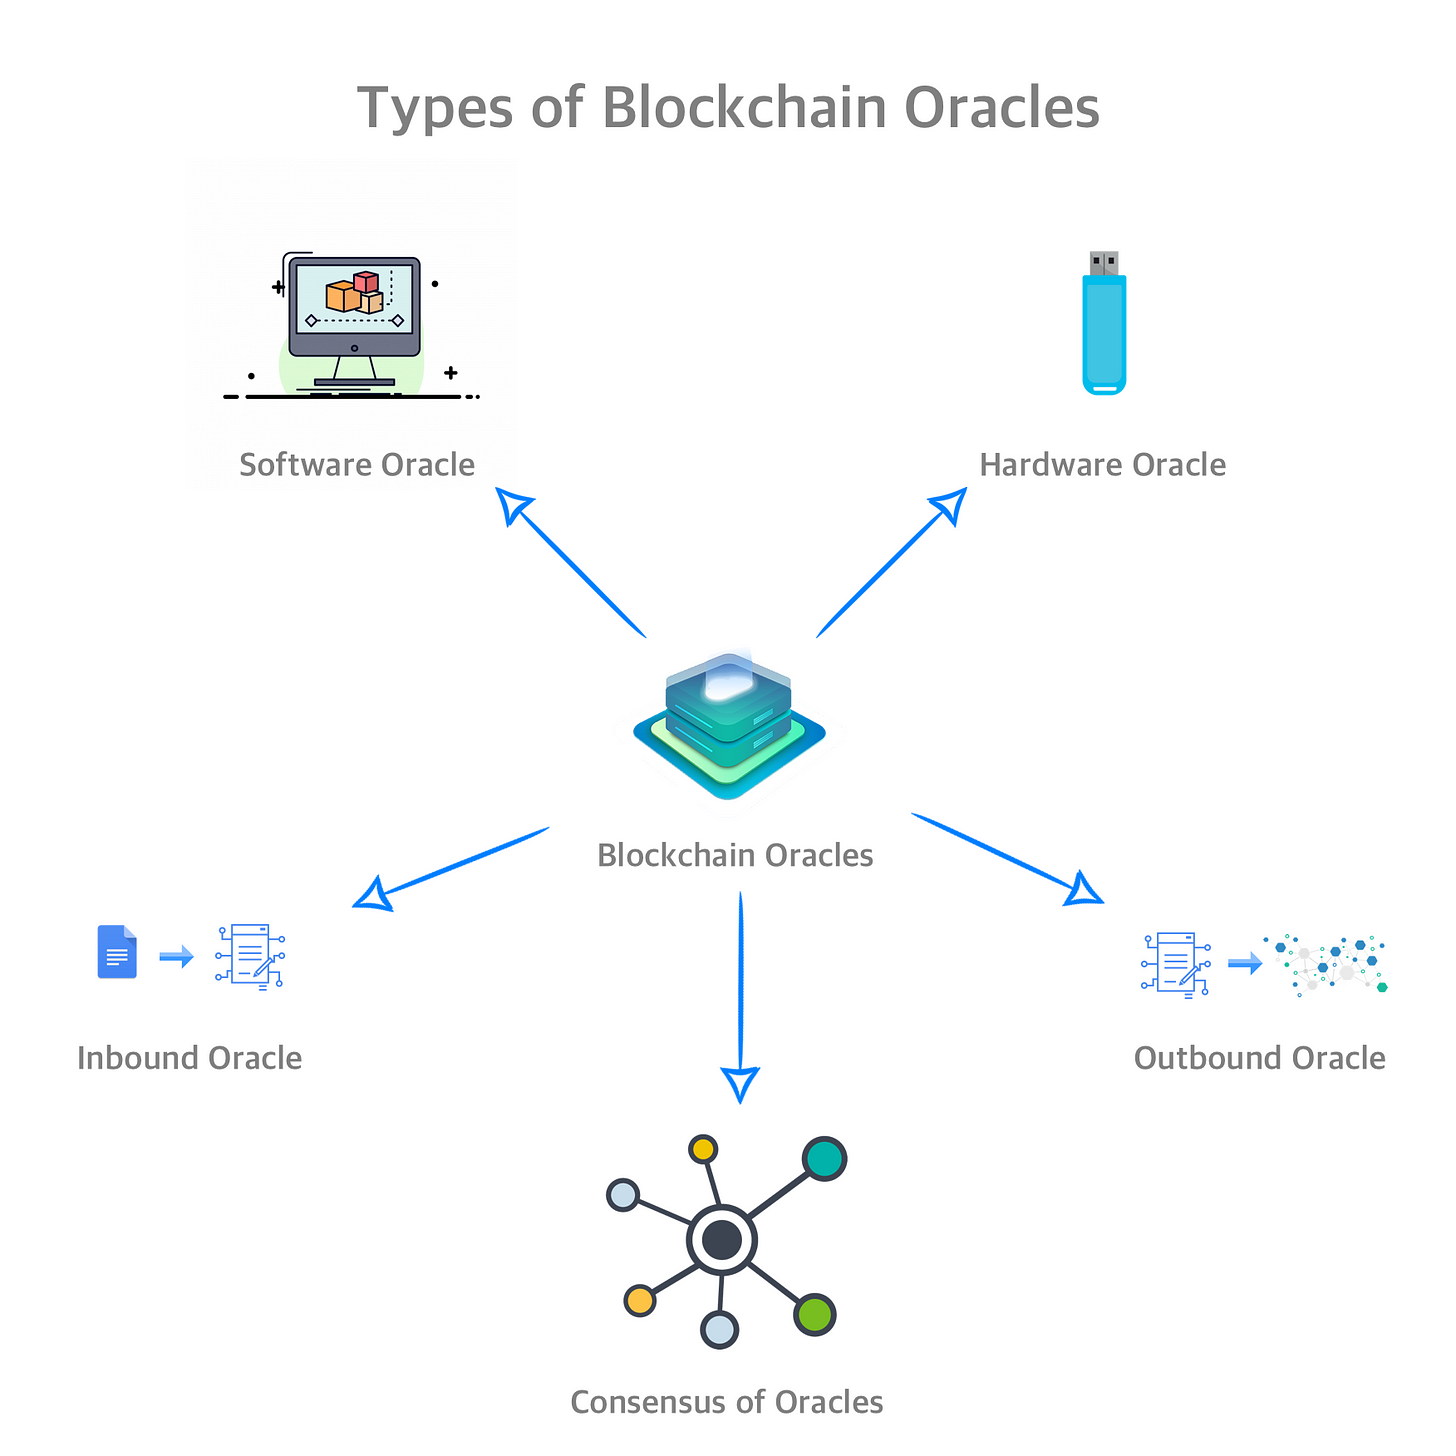 Blockchain Oracle Types